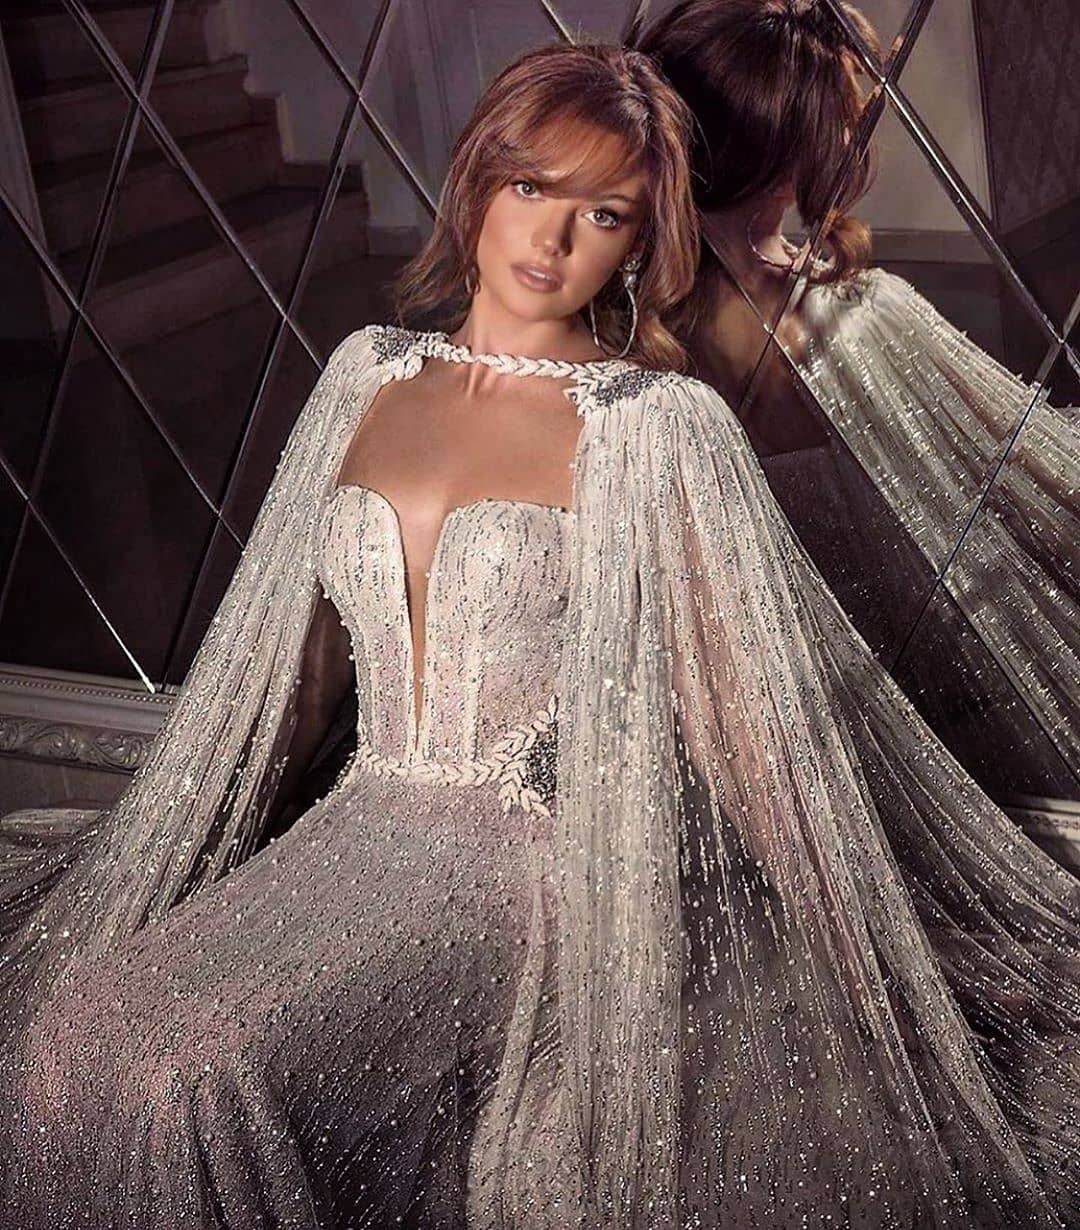 Silver Off-Shoulder Bride Gown with Train In Sequins and Beads.